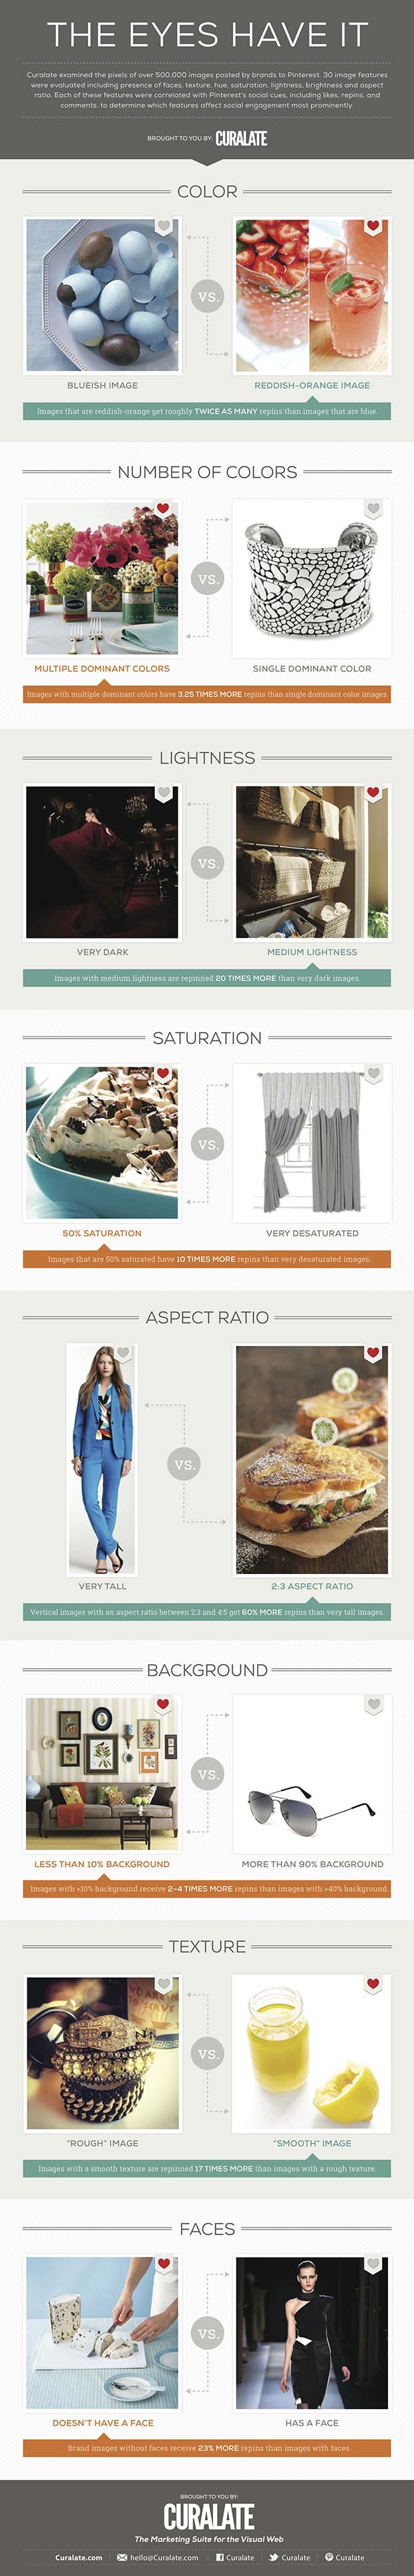 Which Pinterest Pictures Get More Repins? [infographic]